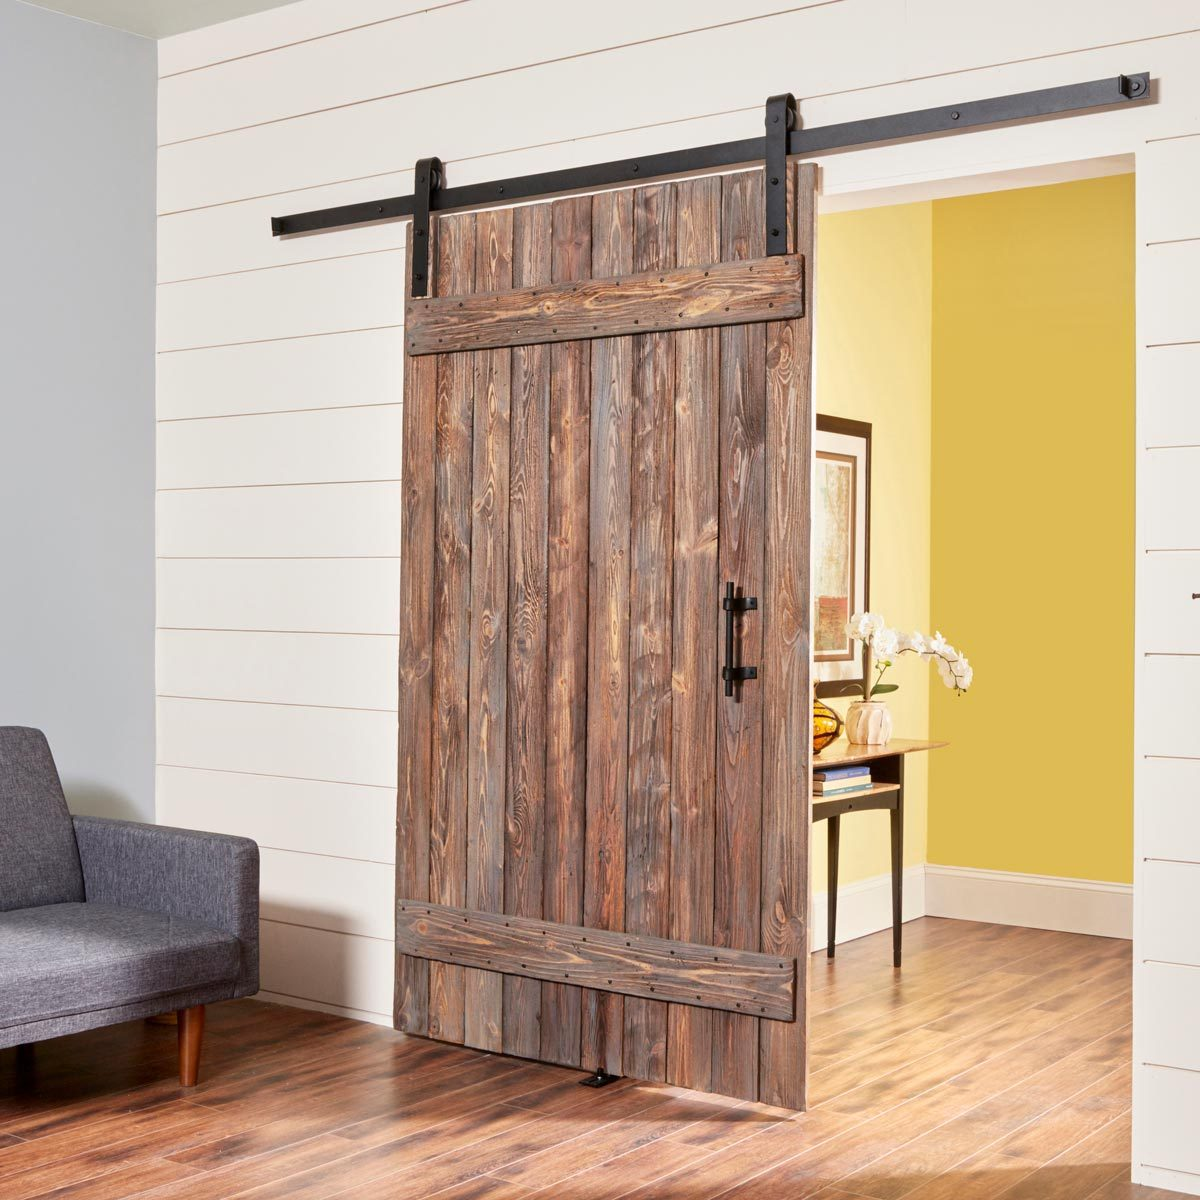 DIY Rustic Barn Door and Hardware